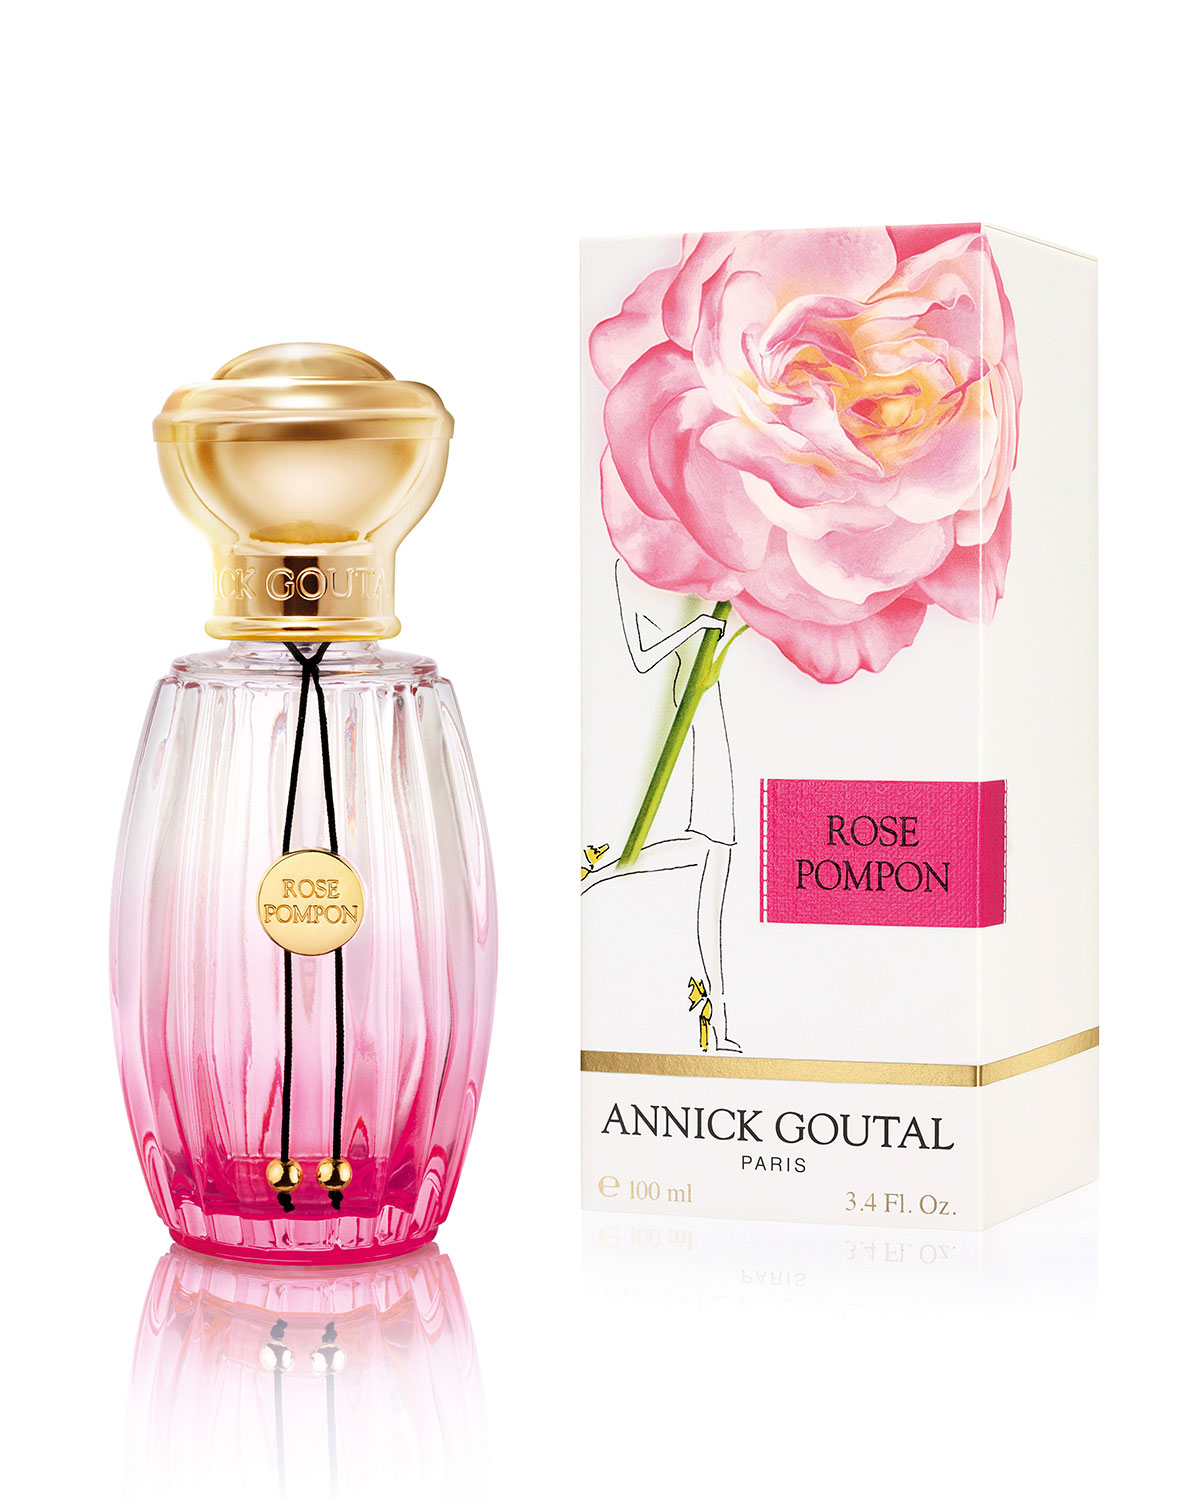 Rose Pompon Annick Goutal perfume